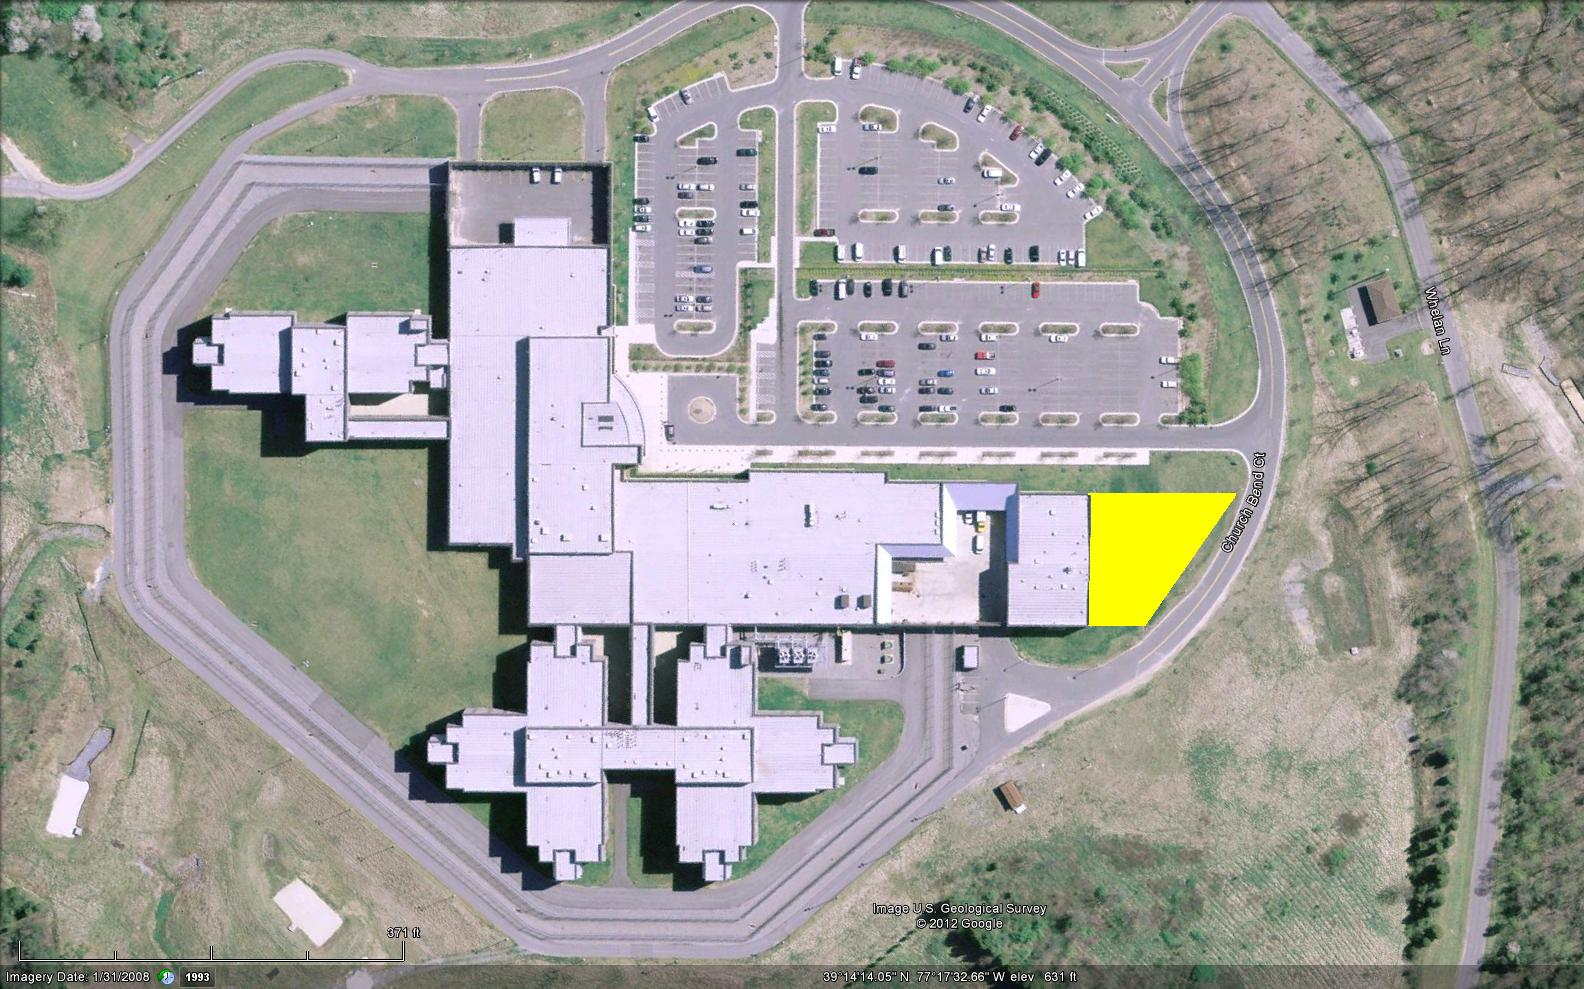 Department of Correction and Rehabilitation Staff Training Center - Site Map